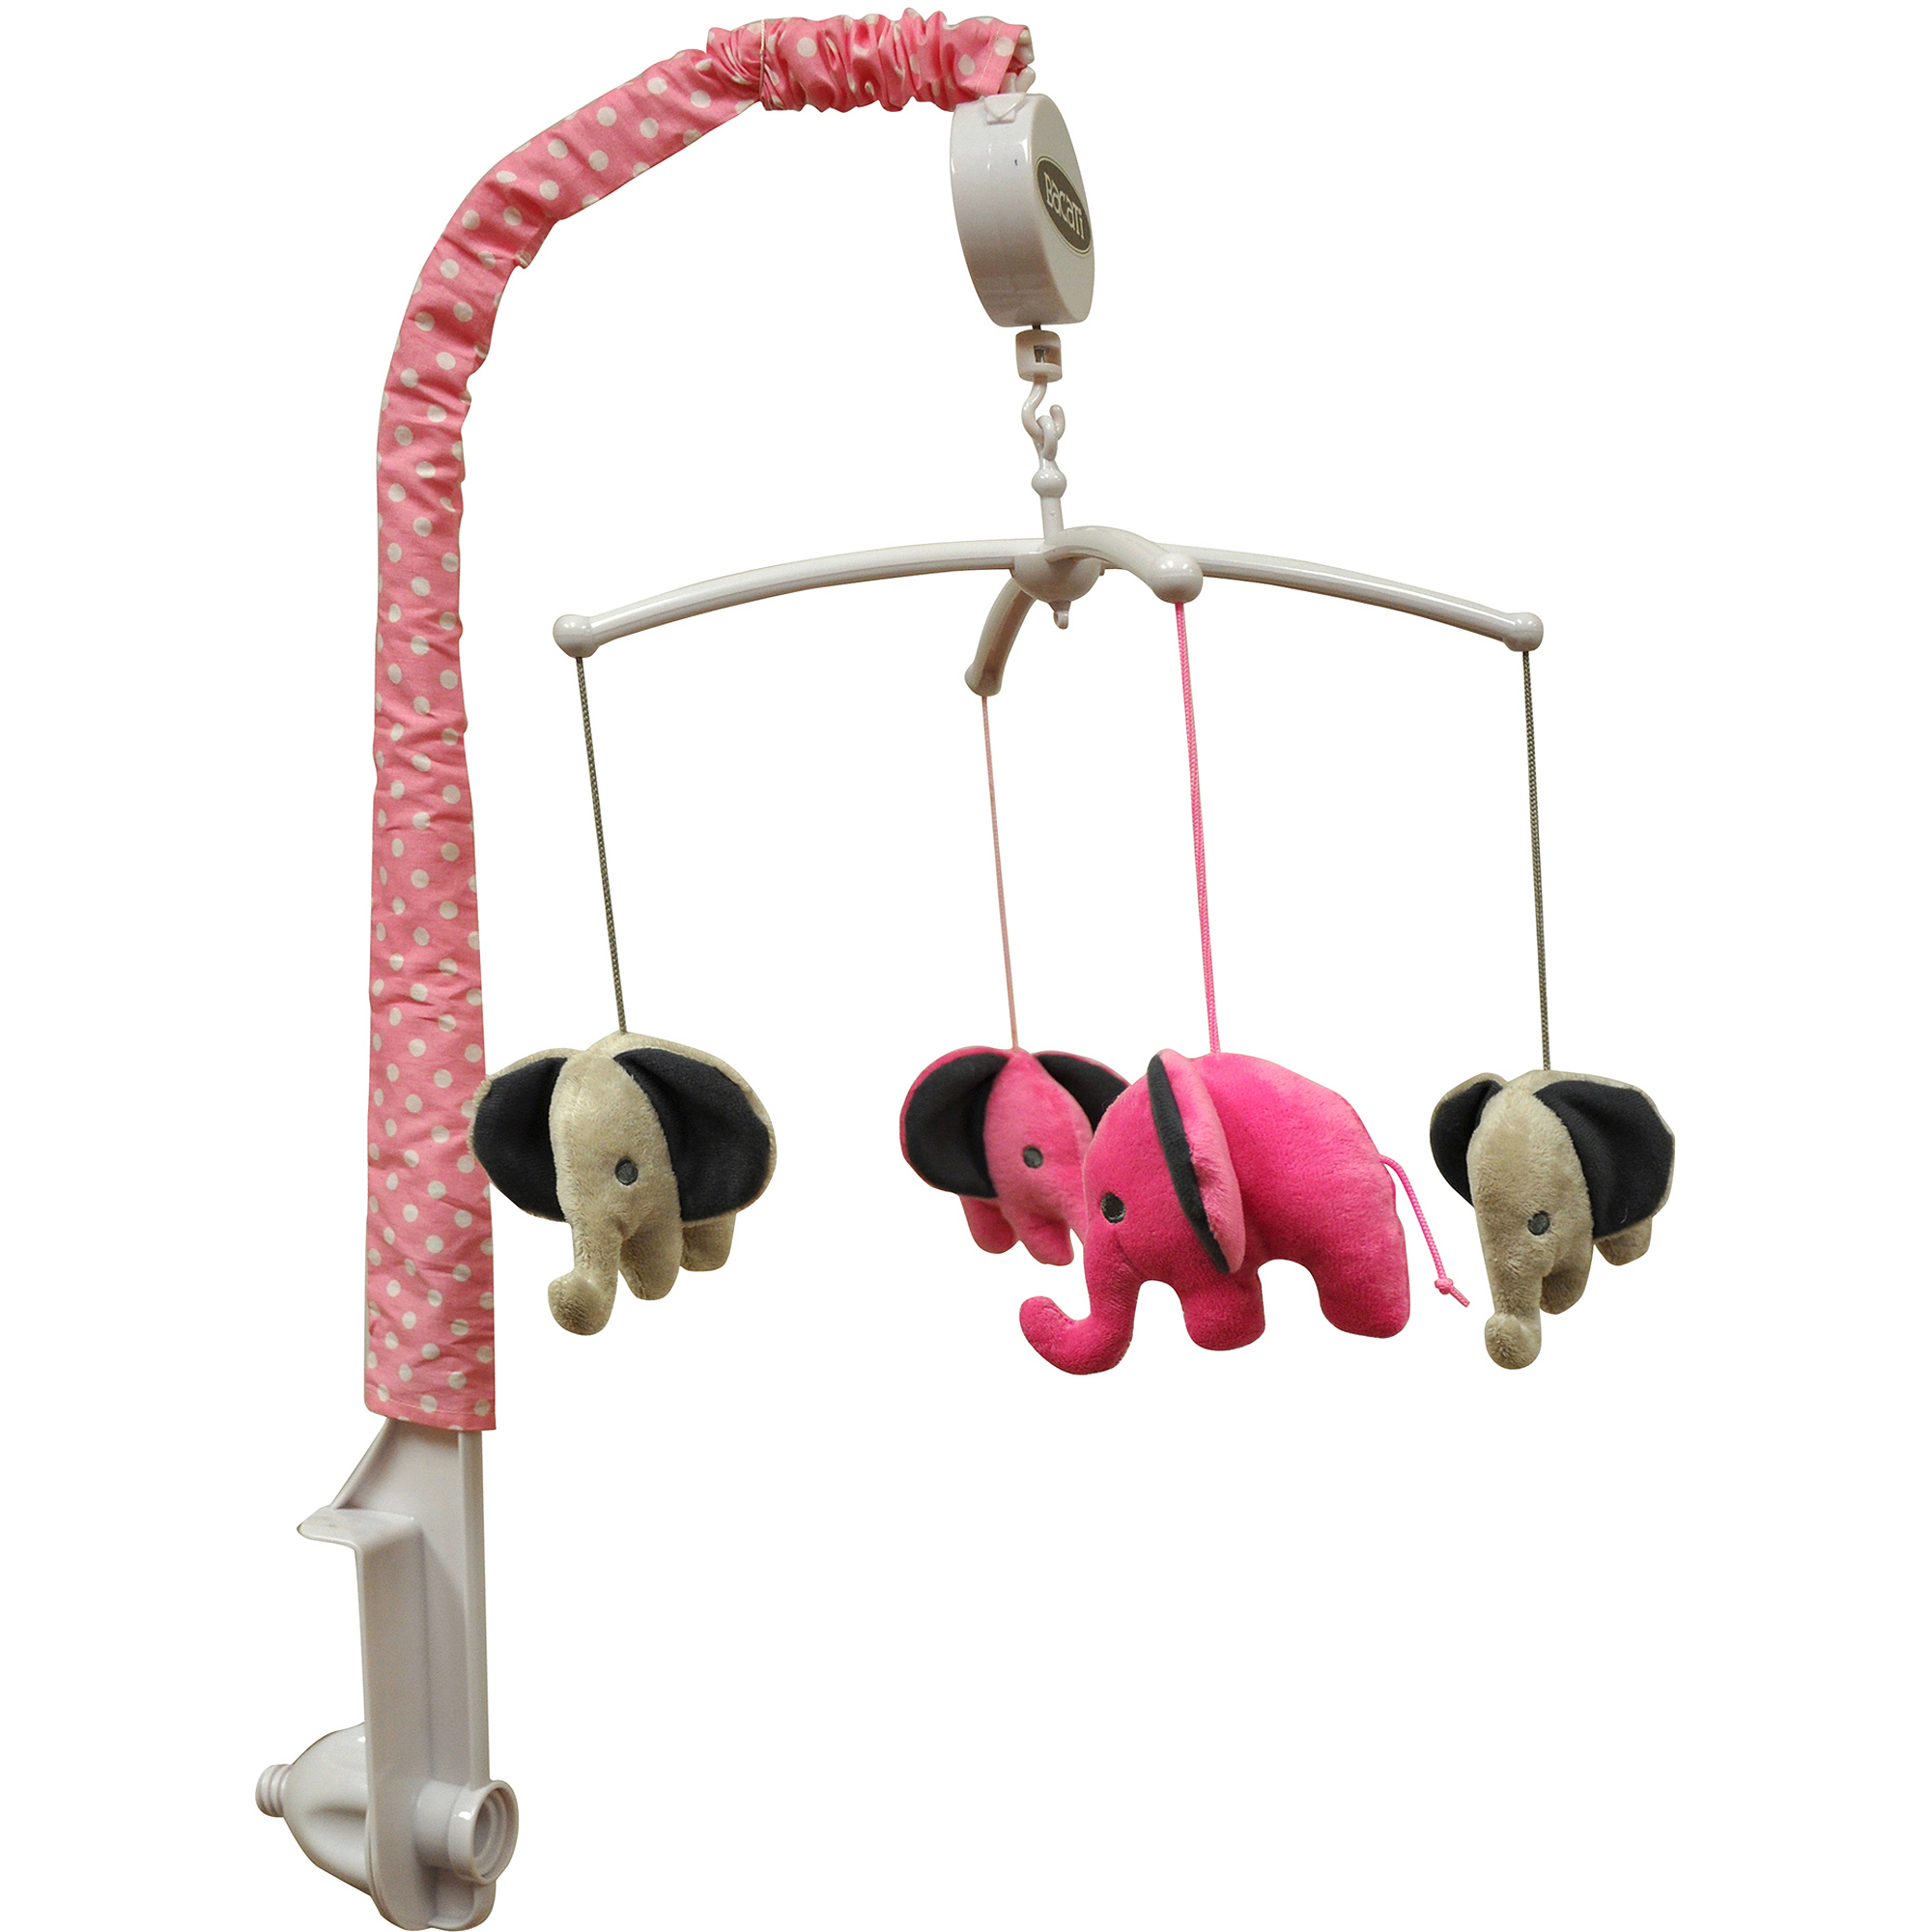 Bacati Elephants Musical Mobile with Hanging Toys, Pink Gray by Bacati